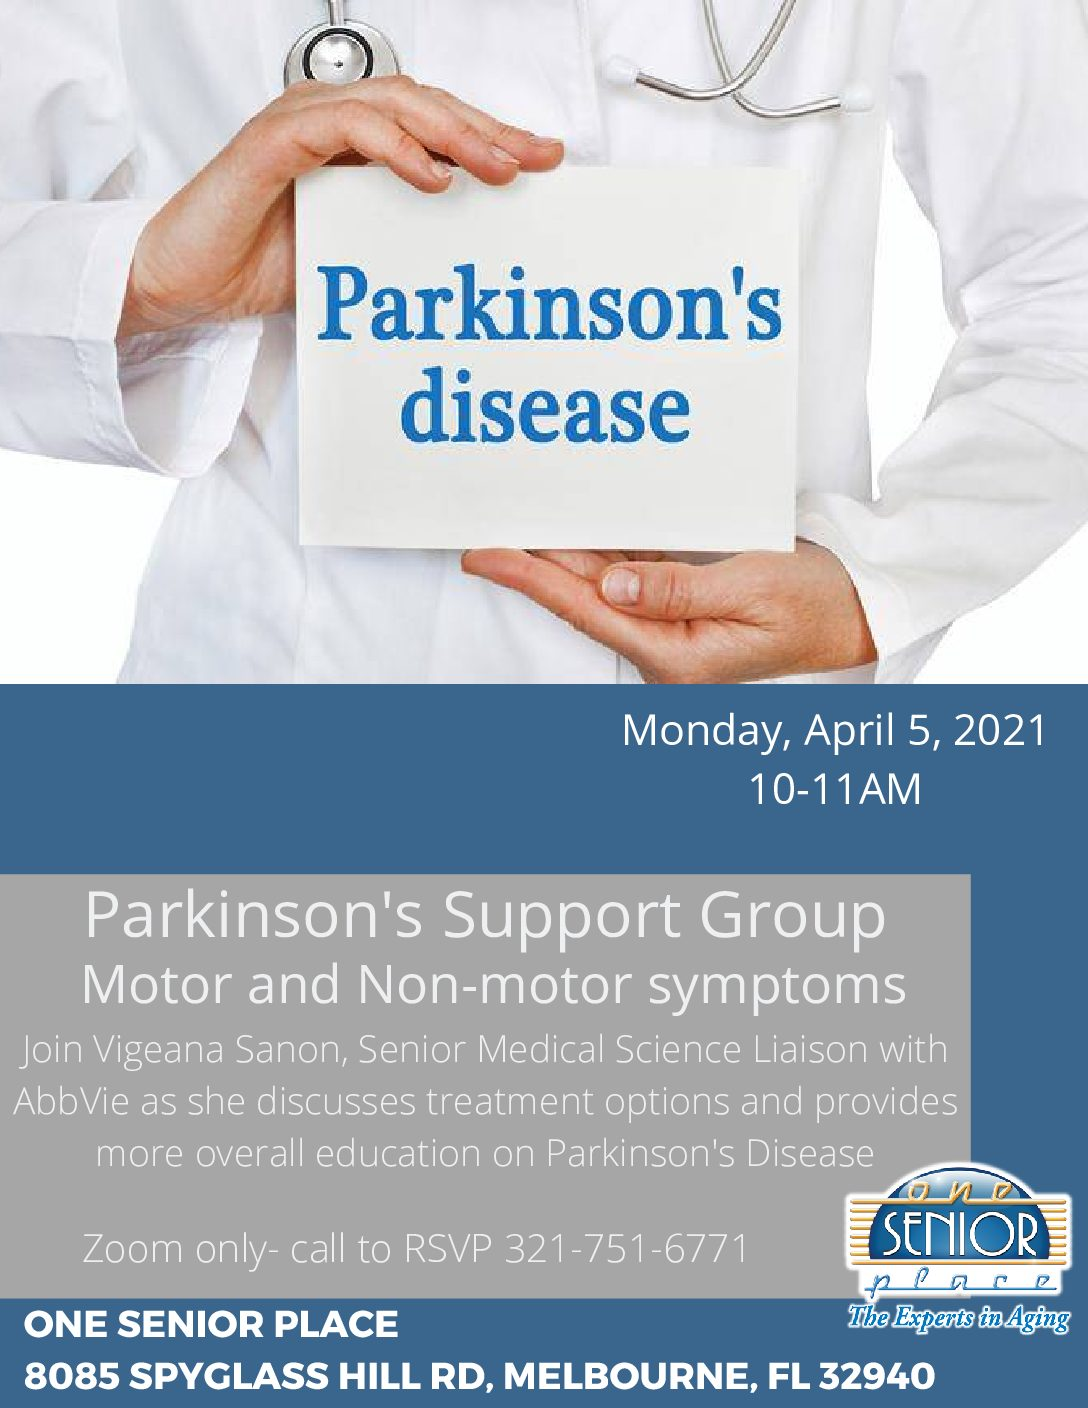 Parkinson's Support Group - Motor and Non-motor symptoms (ZOOM Only)